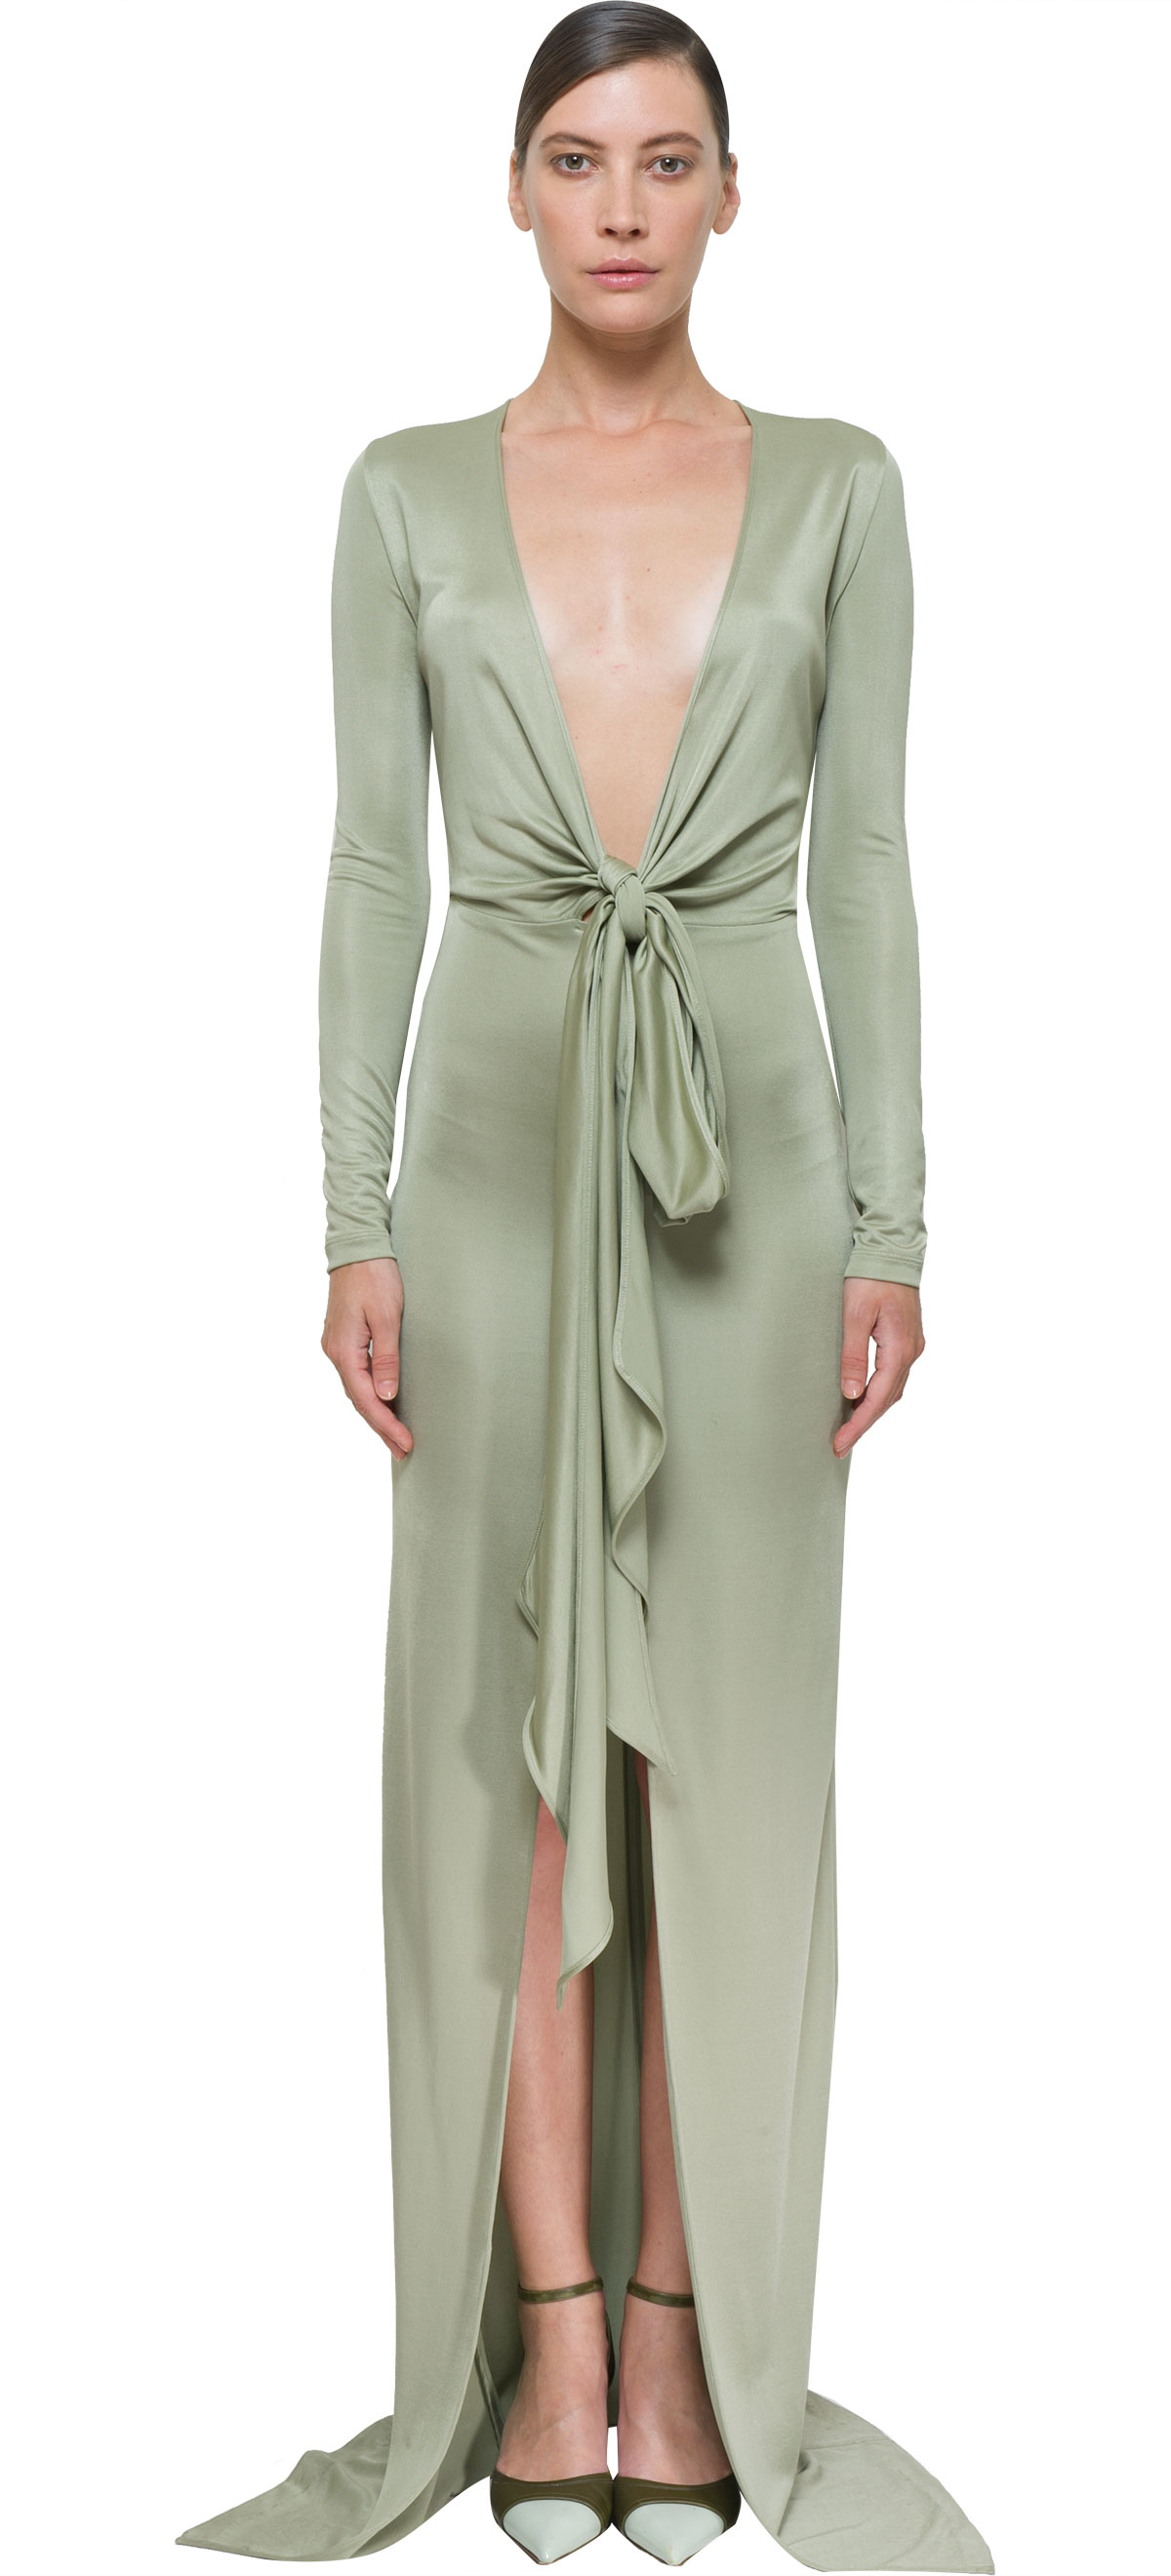 Lyst - Givenchy Pistachio Long Dress in Green